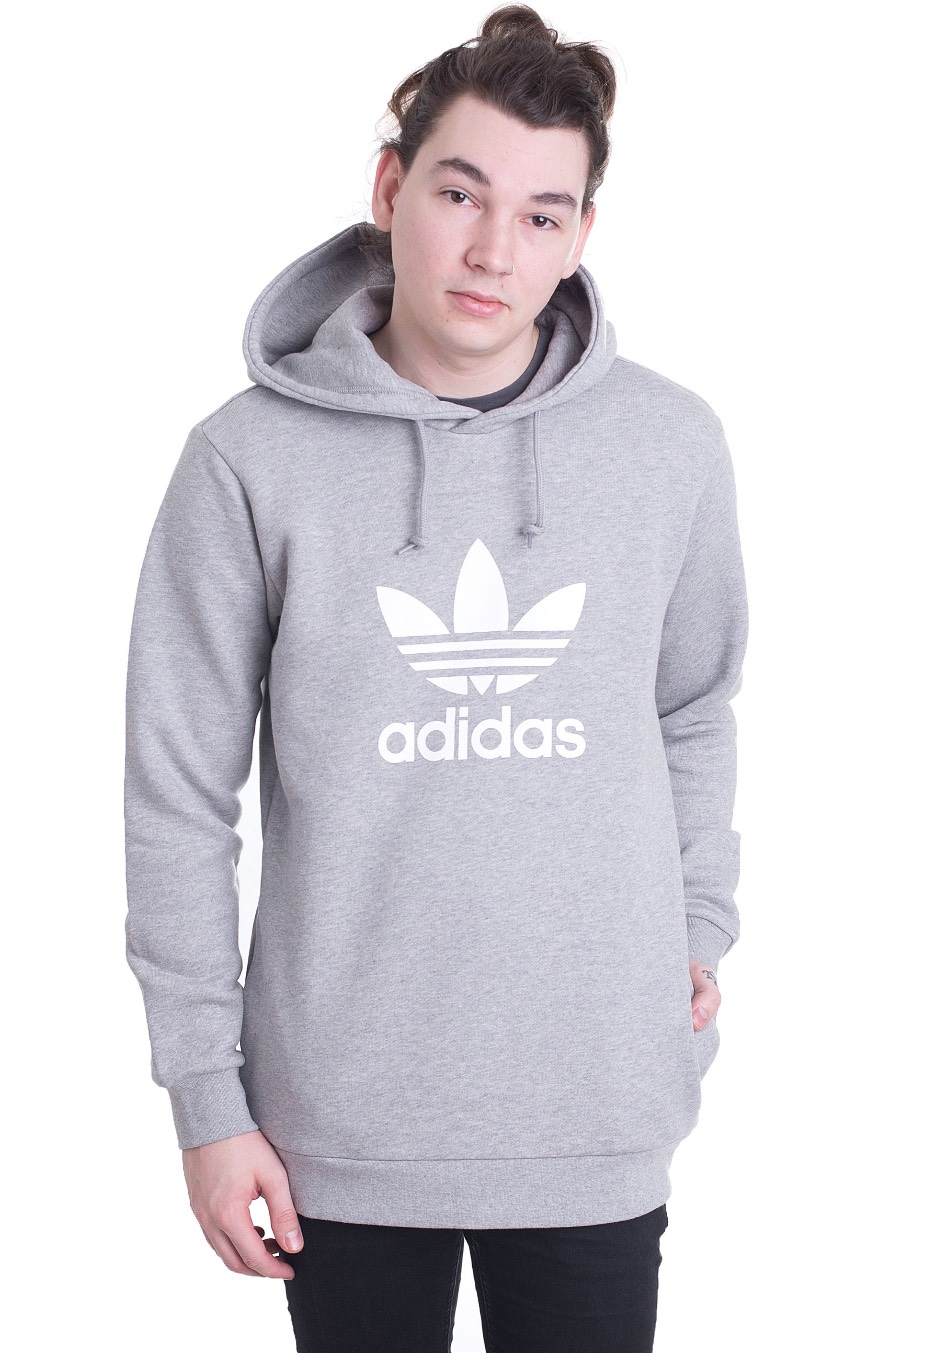 sale retailer a0123 0e6b2 Adidas - Trefoil Medium Grey Heather - Hoodie - Streetwear Shop -  Impericon.com US